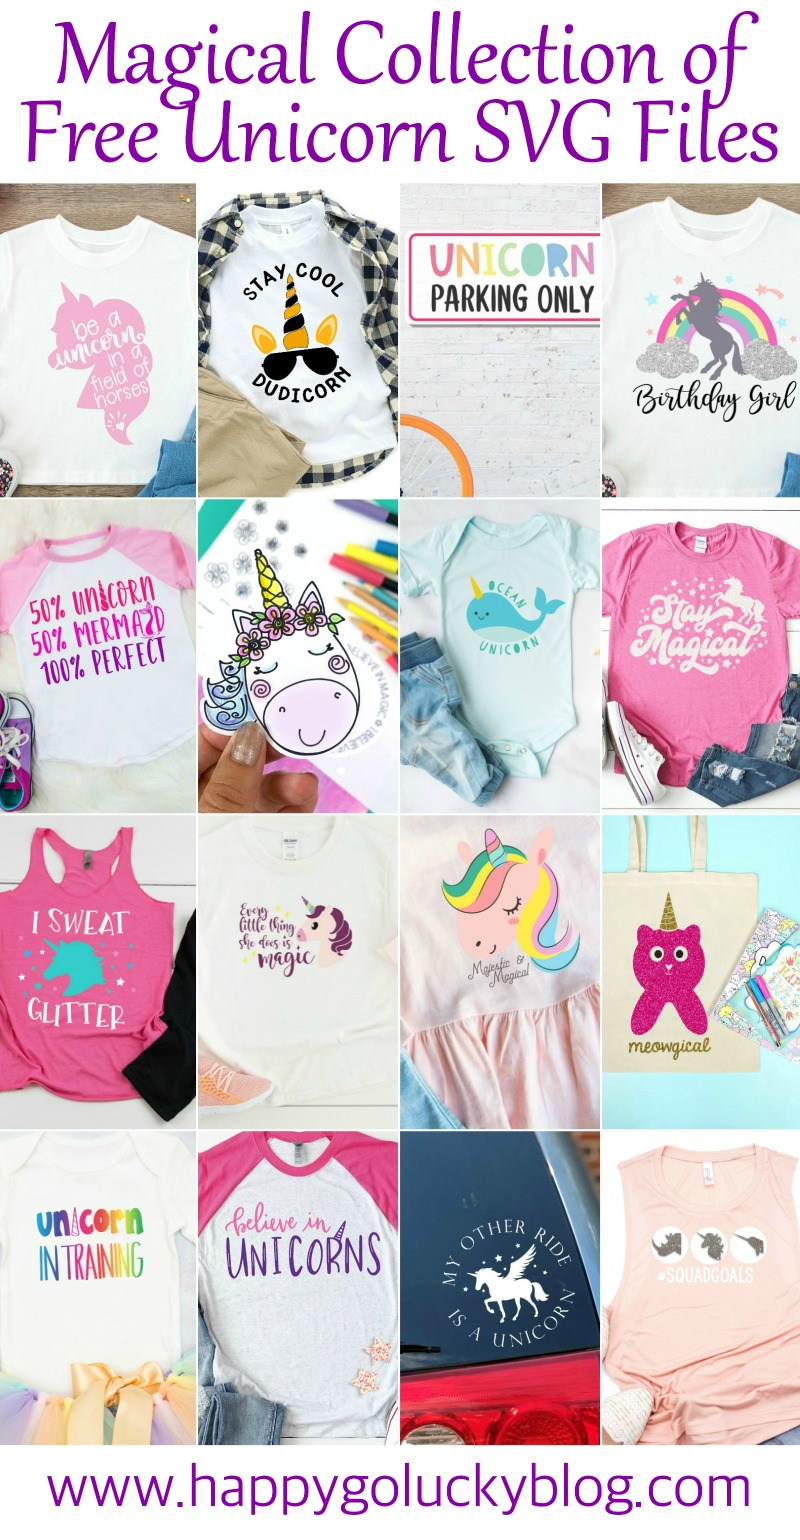 https://www.happygoluckyblog.com/wp-content/uploads/2019/07/Free-Unicorn-SVG-Cut-Files.jpg